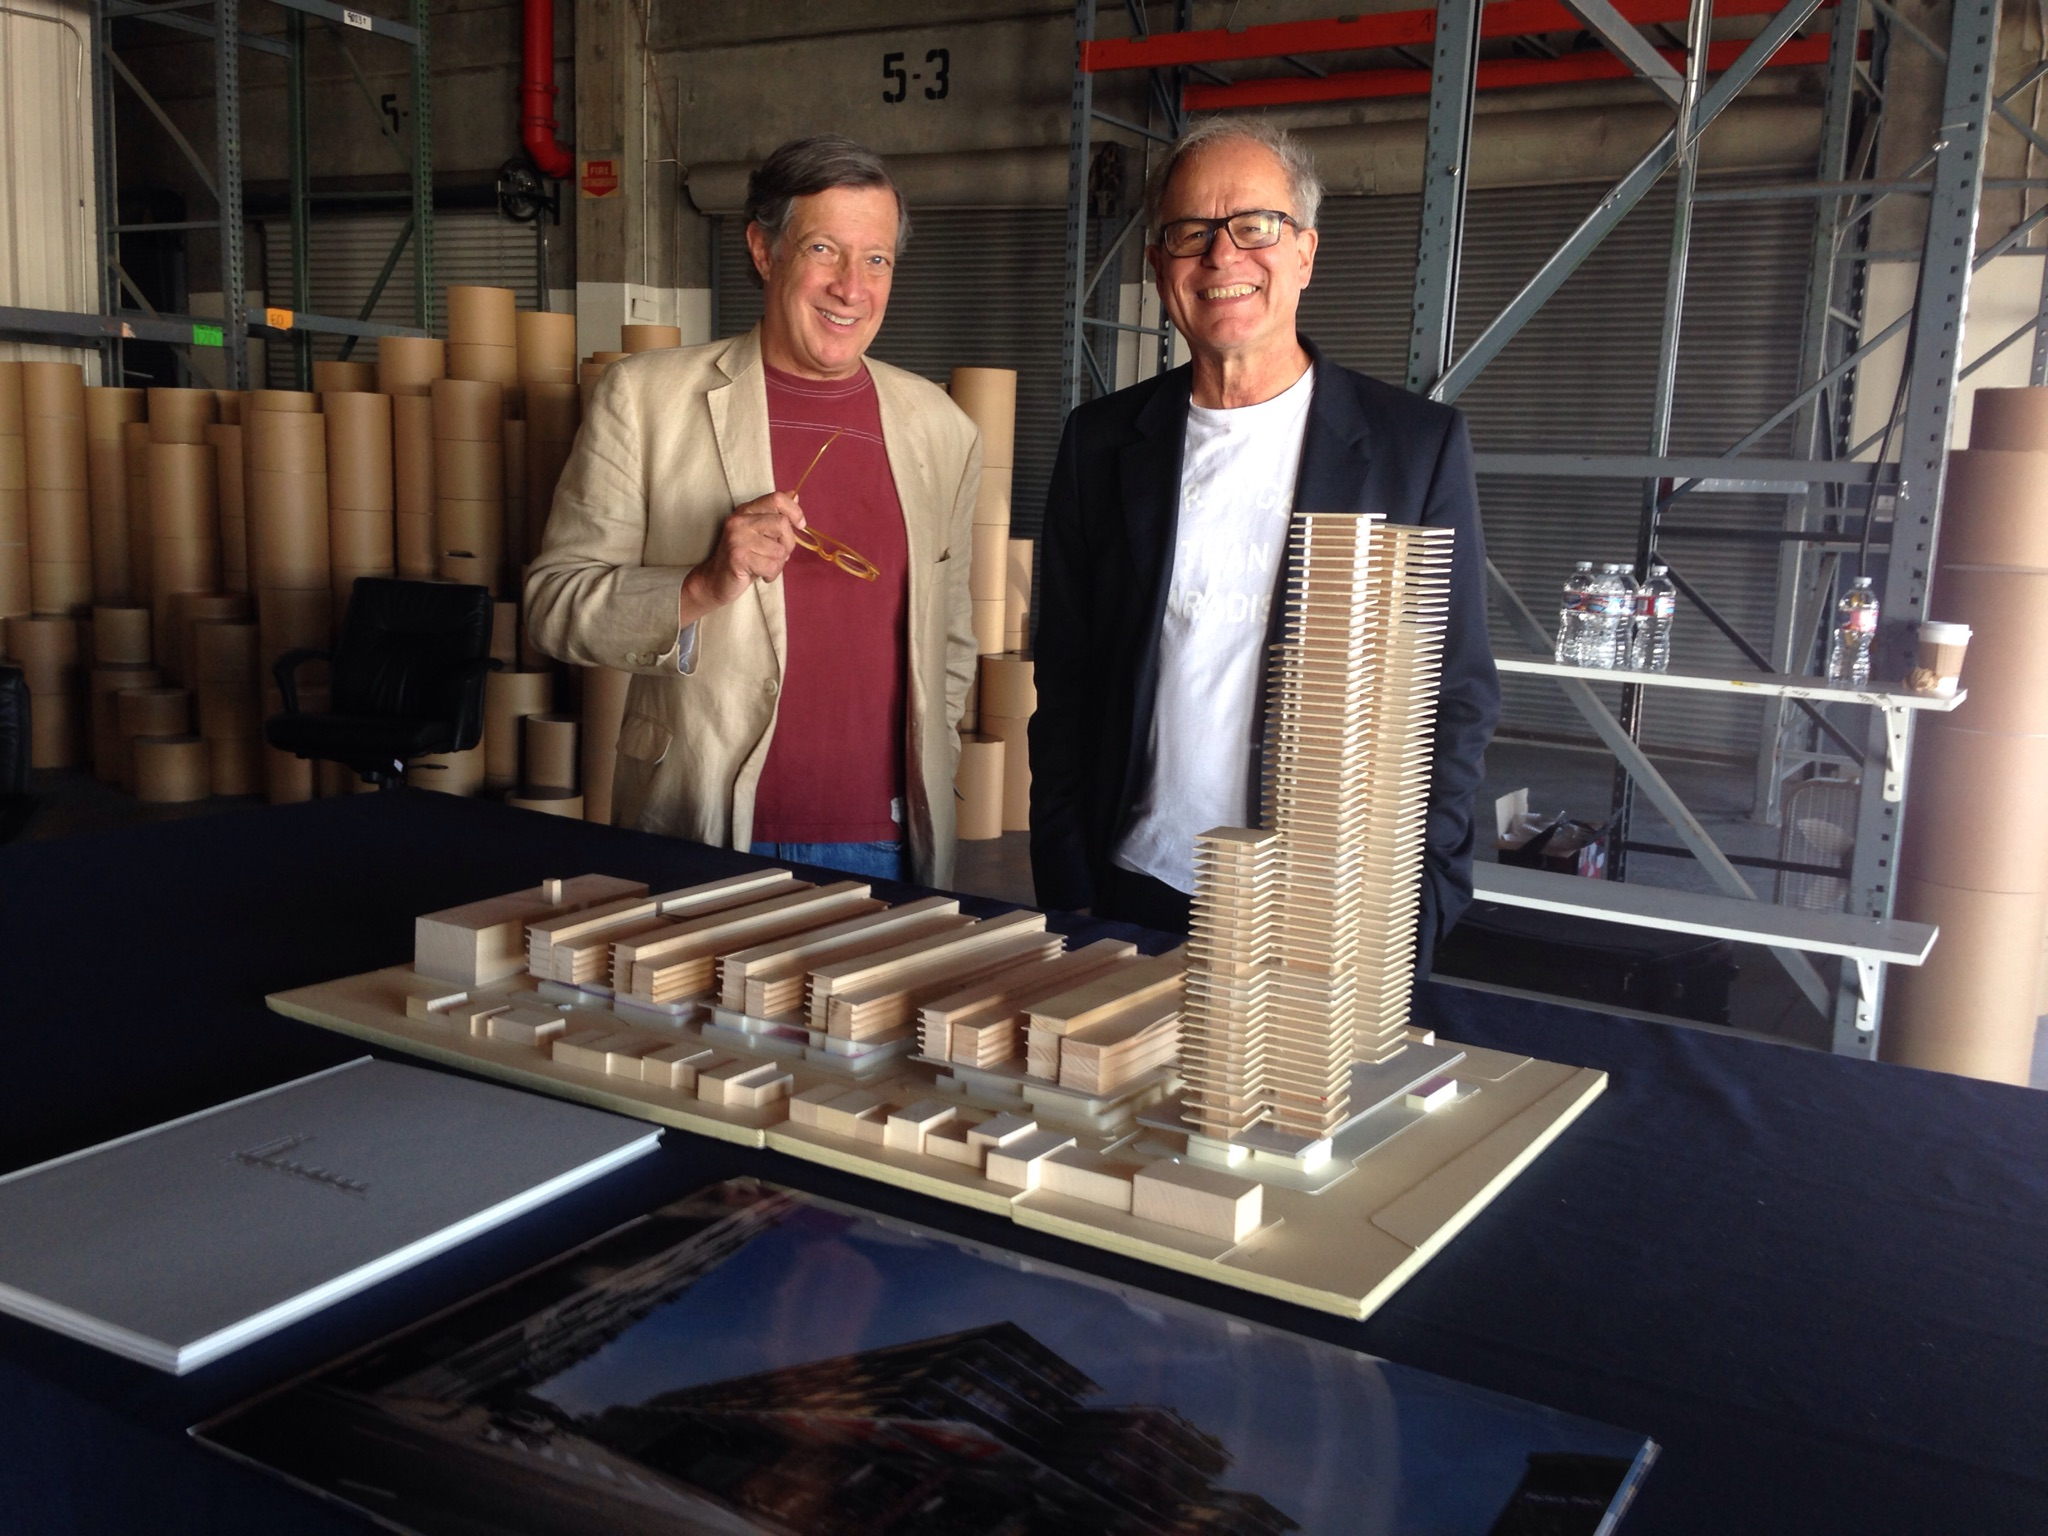 Dan Rosenfeld, left, and Pierre de Meuron, with the model of the proposed 6AM development at 6th and Alameda in the Arts District.